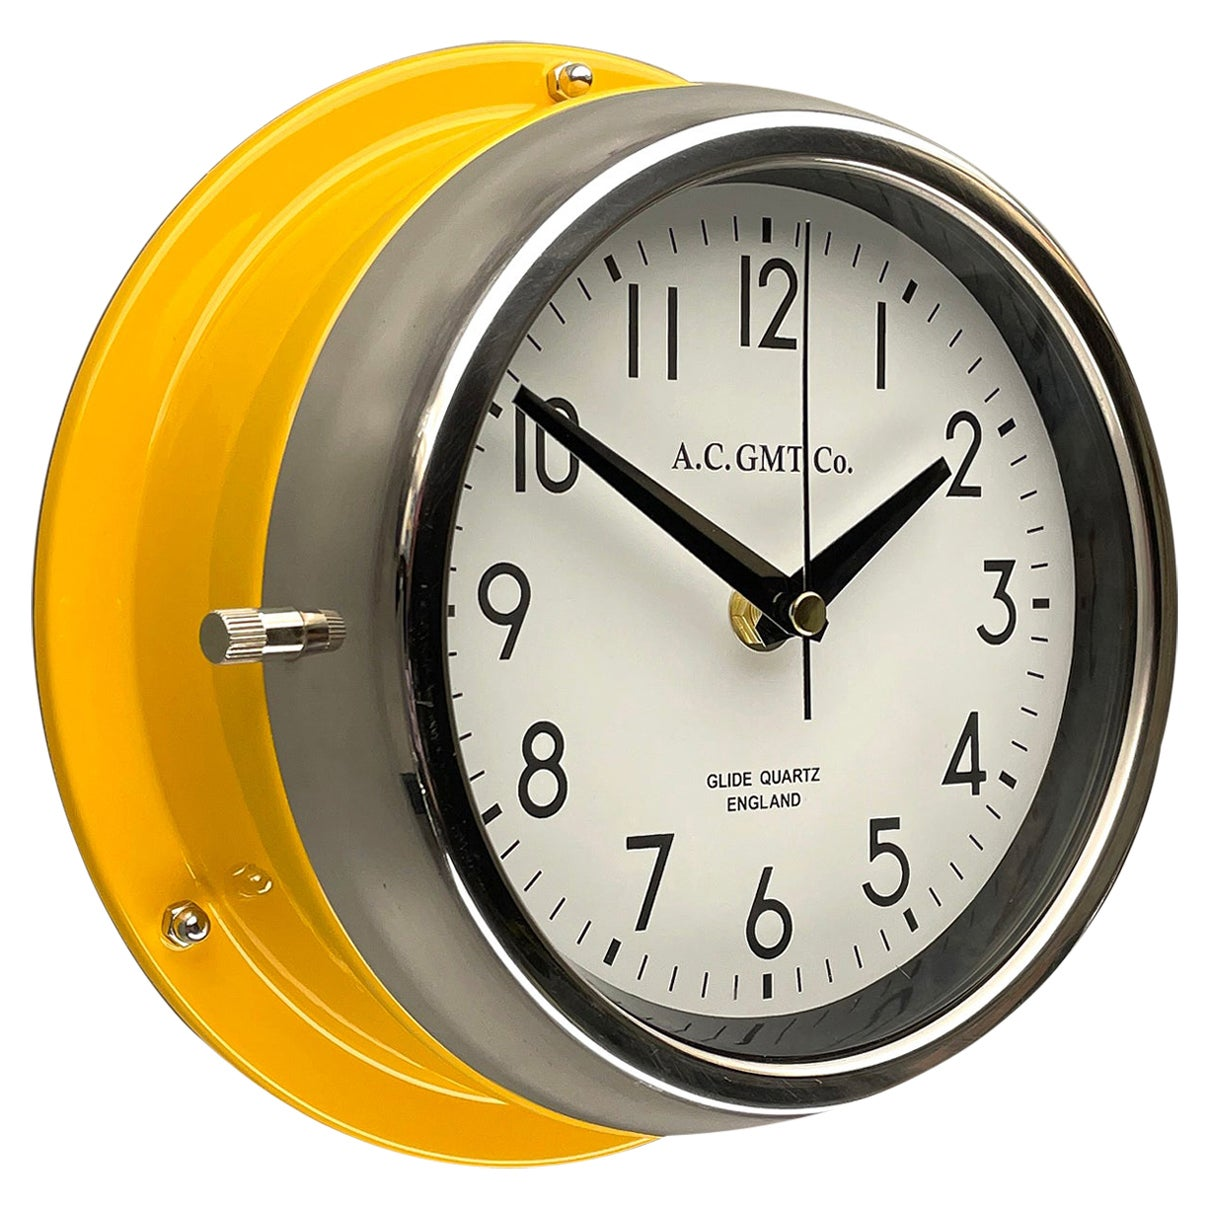 1970's British Yellow Illumination & White AC GMT Co. Classic Quartz Wall Clock